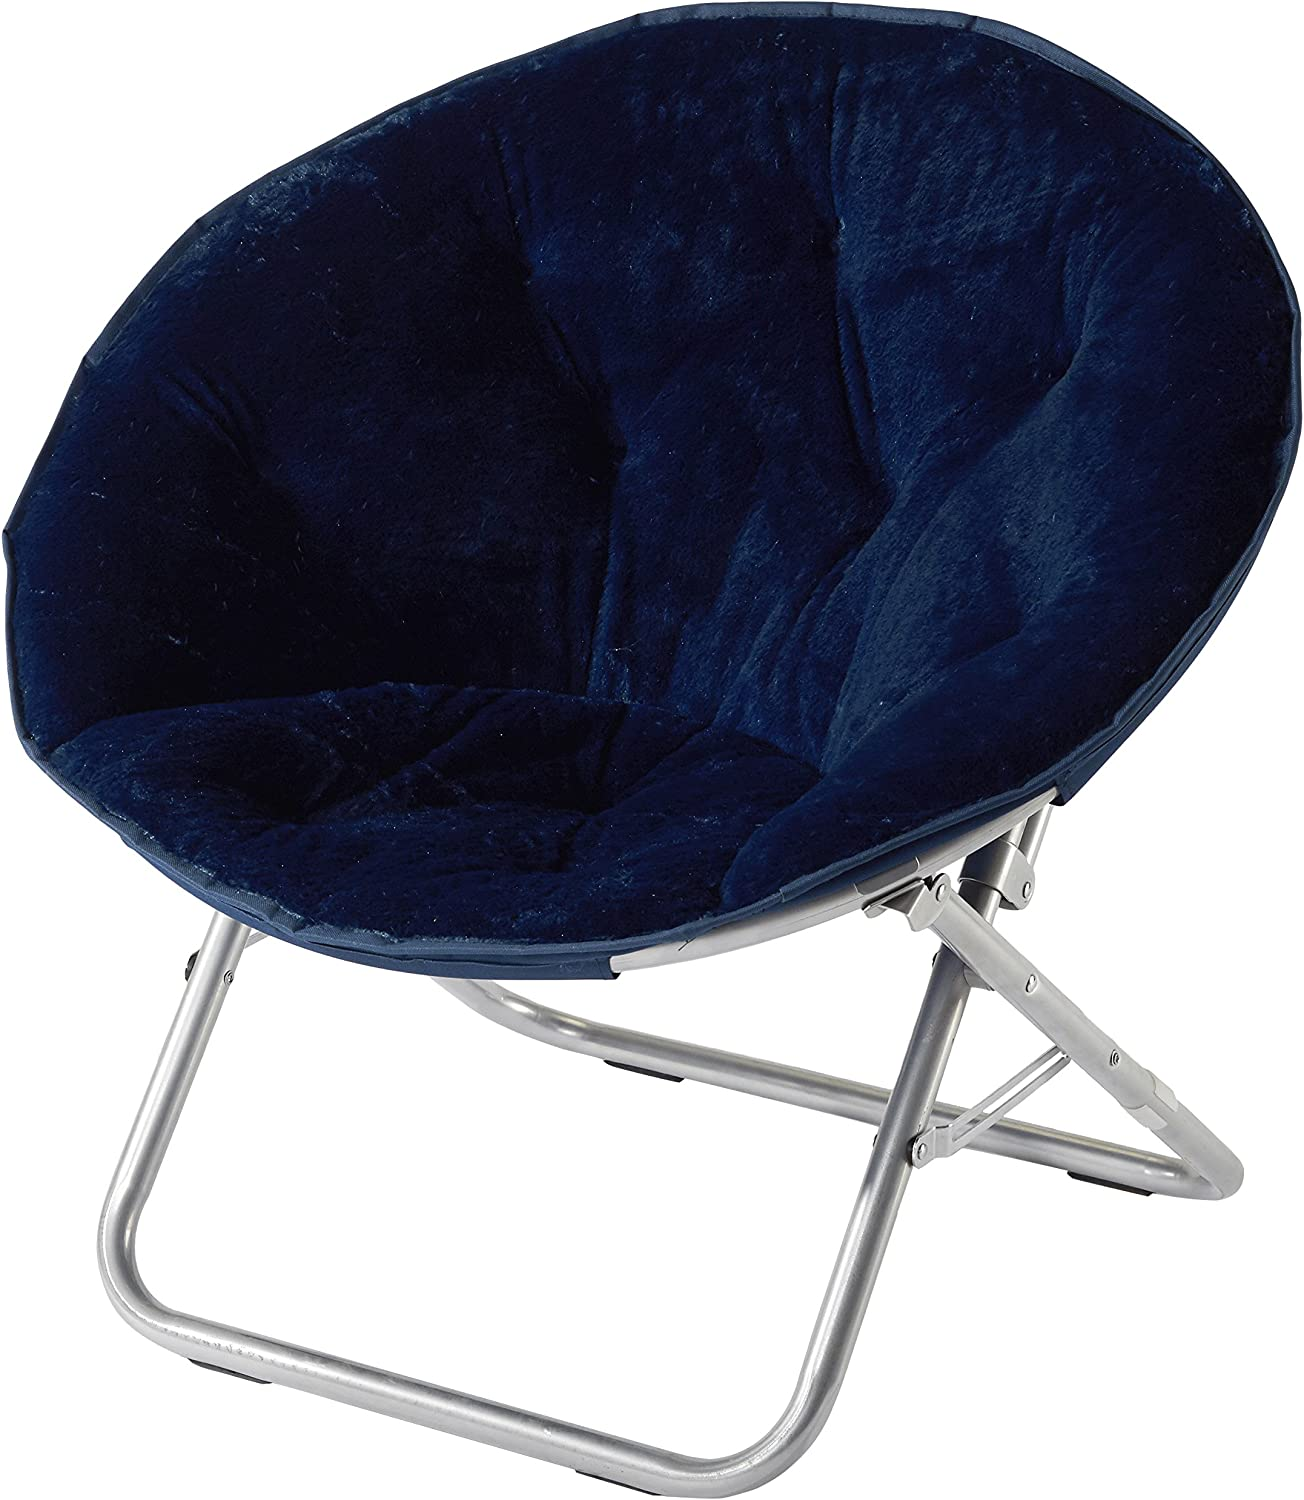 Urban Shop Faux Fur Saucer Chair, Navy